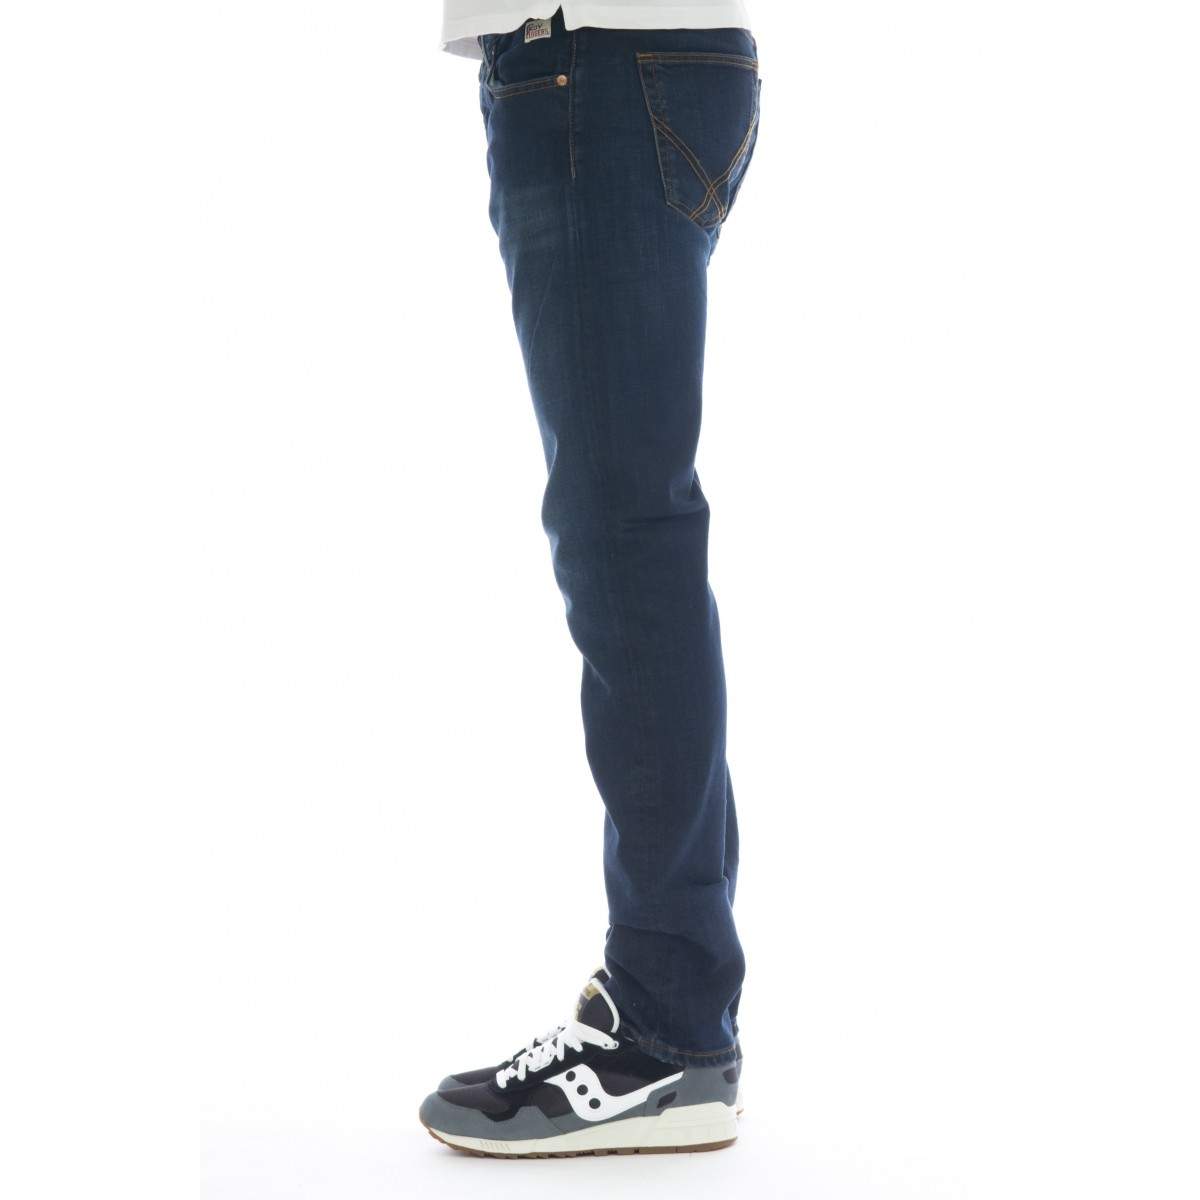 Jeans - 529 patter